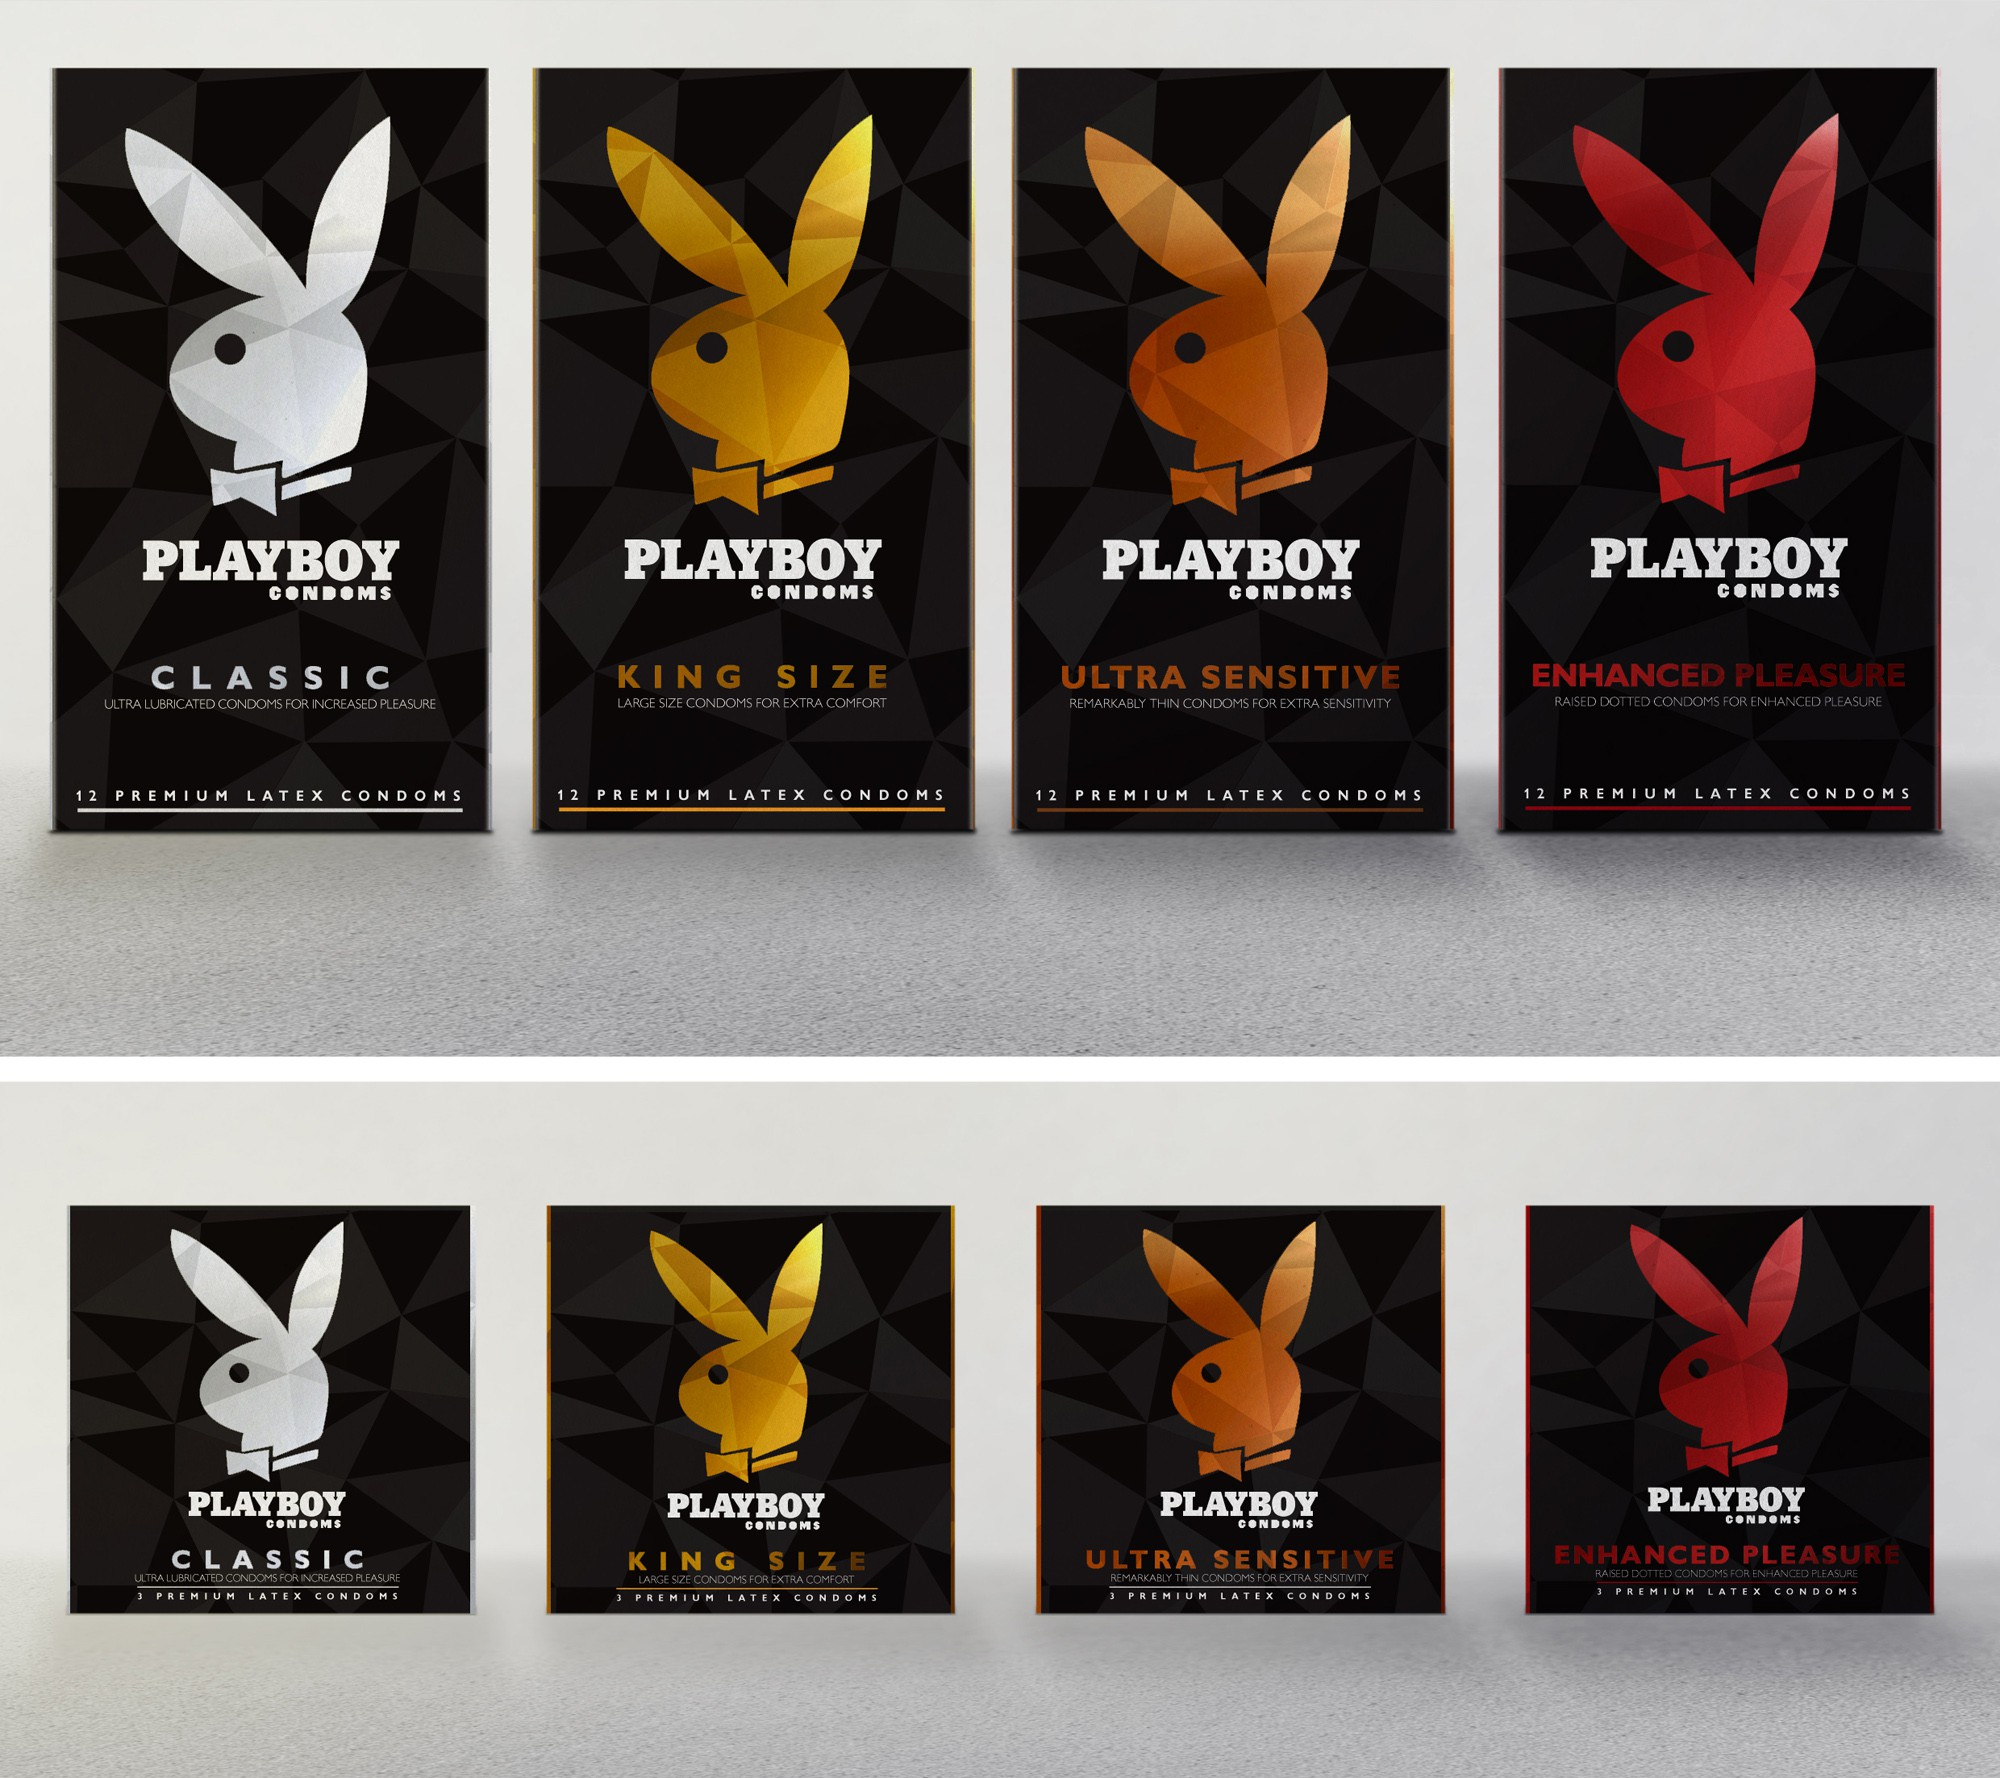 New print or packaging design wanted for Playboy Condoms